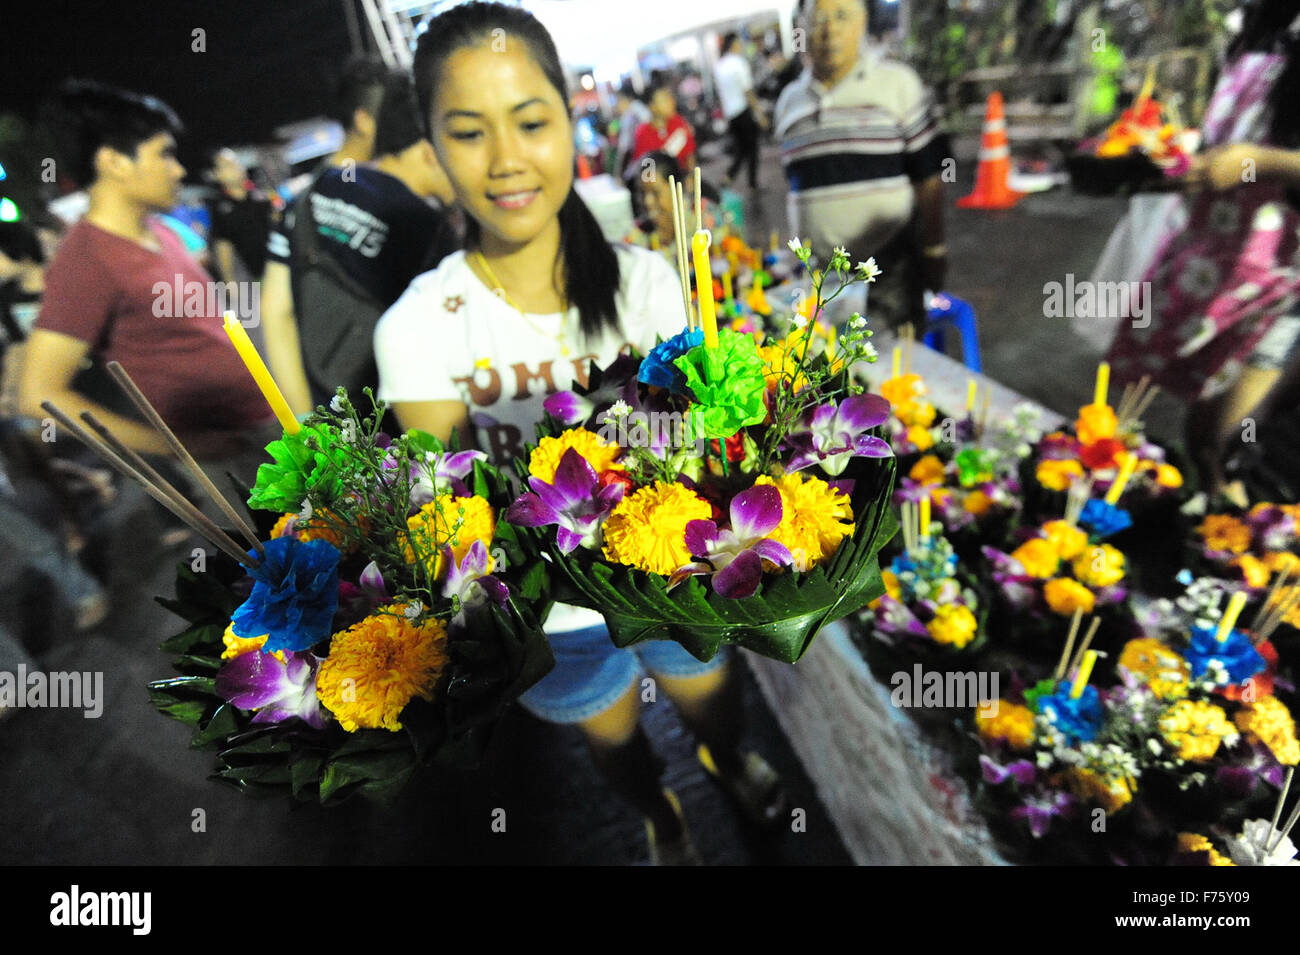 Bangkok, Thailand. 25th Nov, 2015. A woman holds water lanterns during the Loy Krathong festival in Bangkok, Thailand, - Stock Image